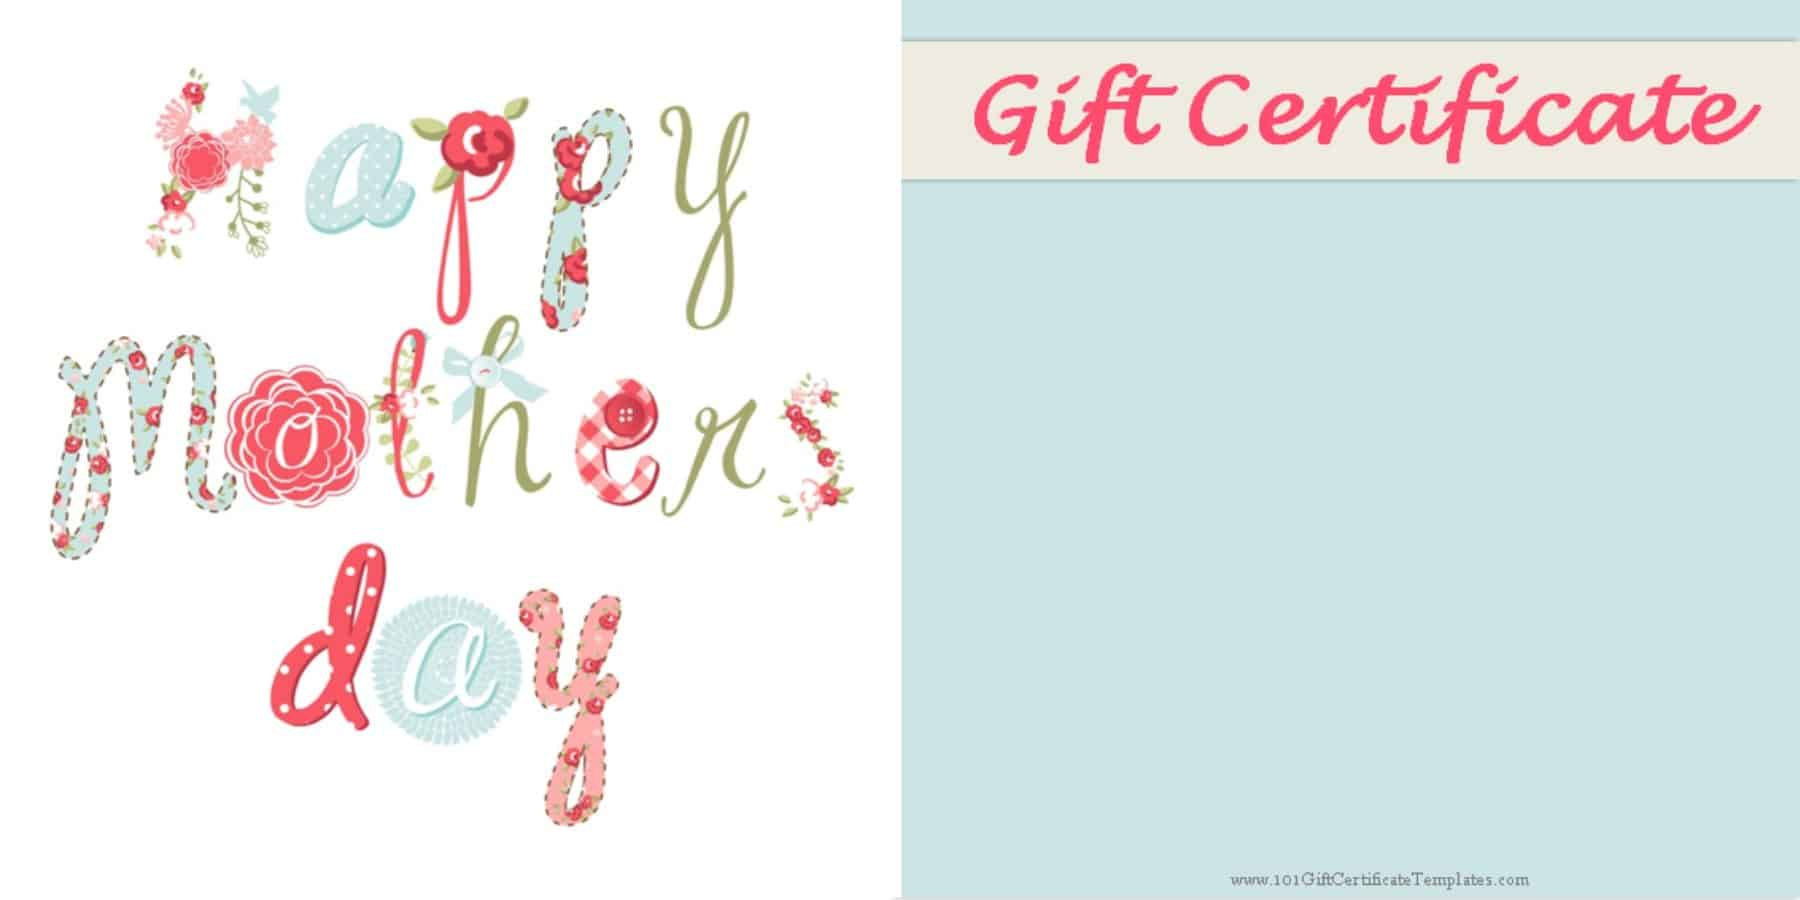 online gift certificate template christmas online online gift certificate template christmas gift certificates gift template mother s day gift certificate templates